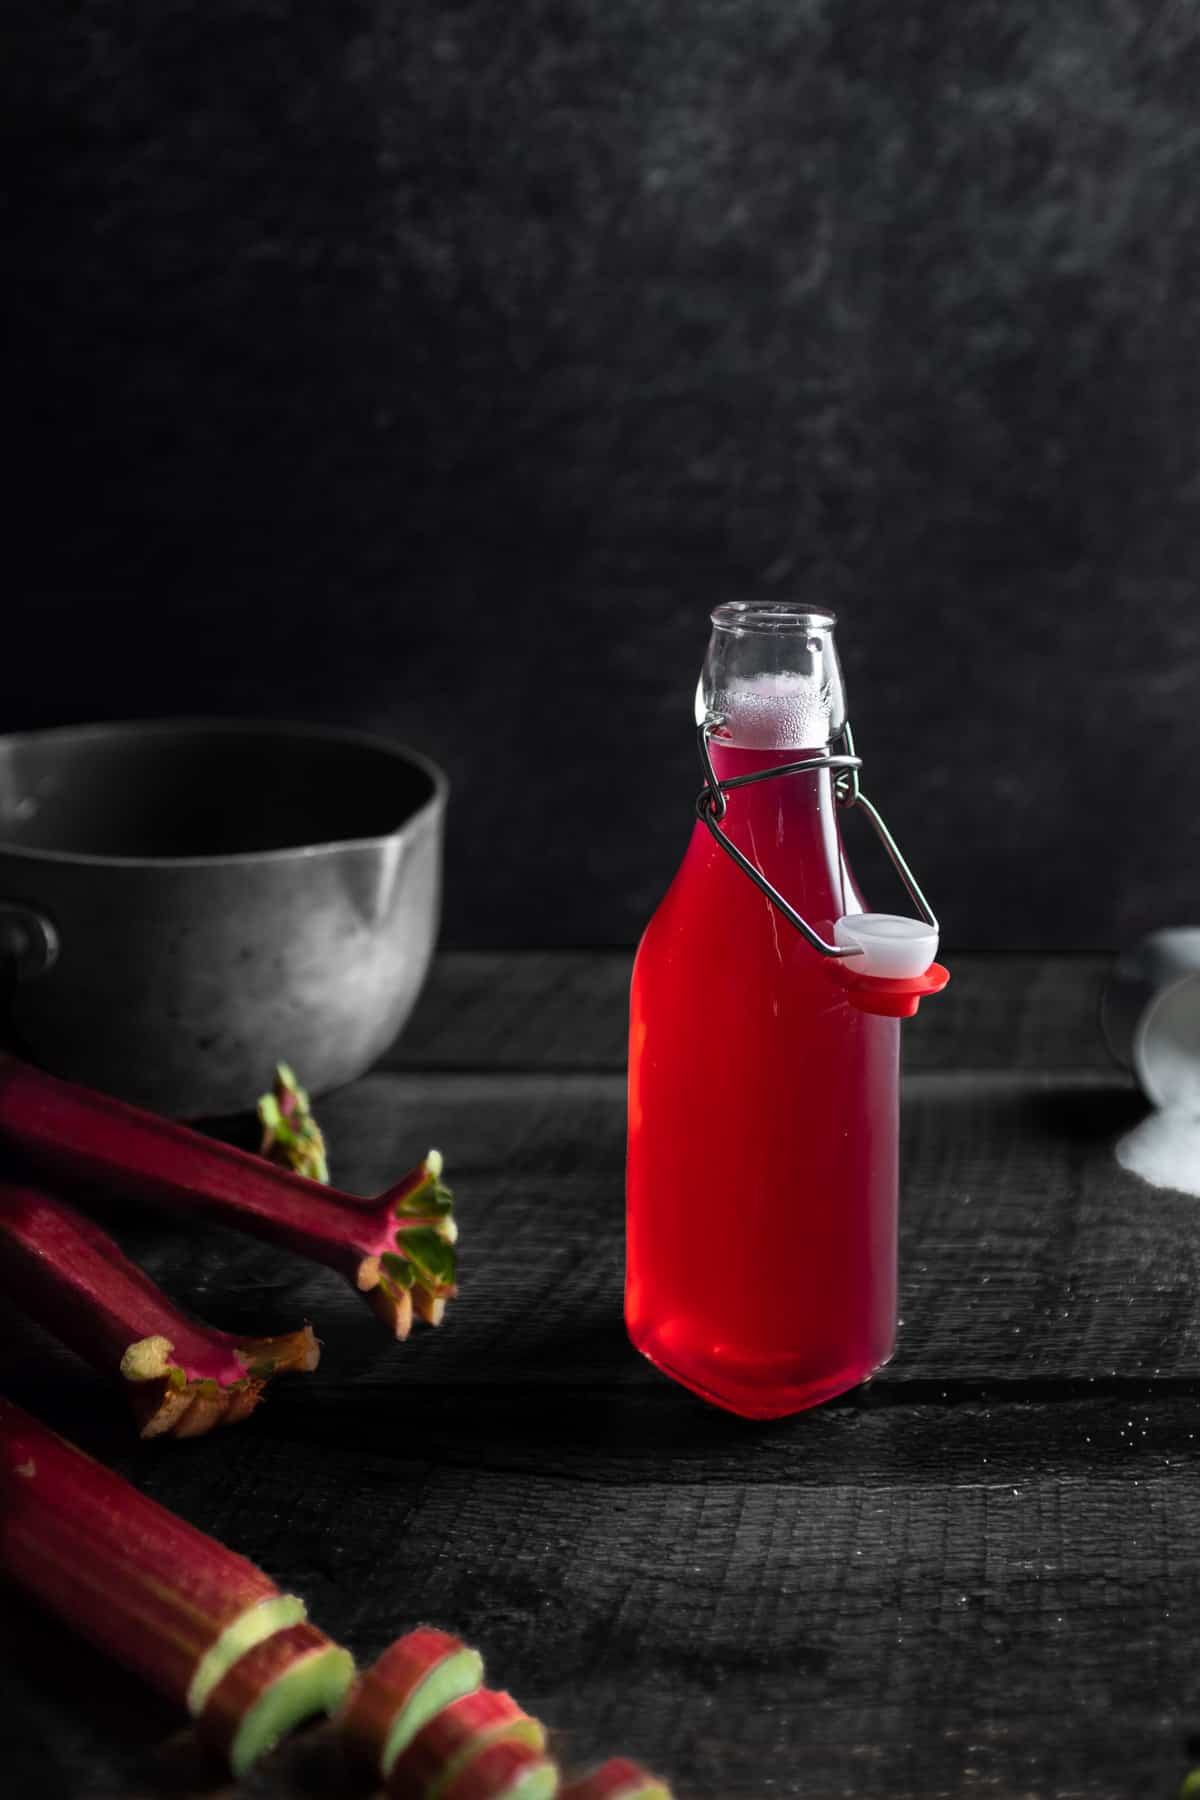 A small bottle of bright pink rhubarb syrup with a pot in the background next to s spilled cup of sugar and a stalk of chopped rhubarb